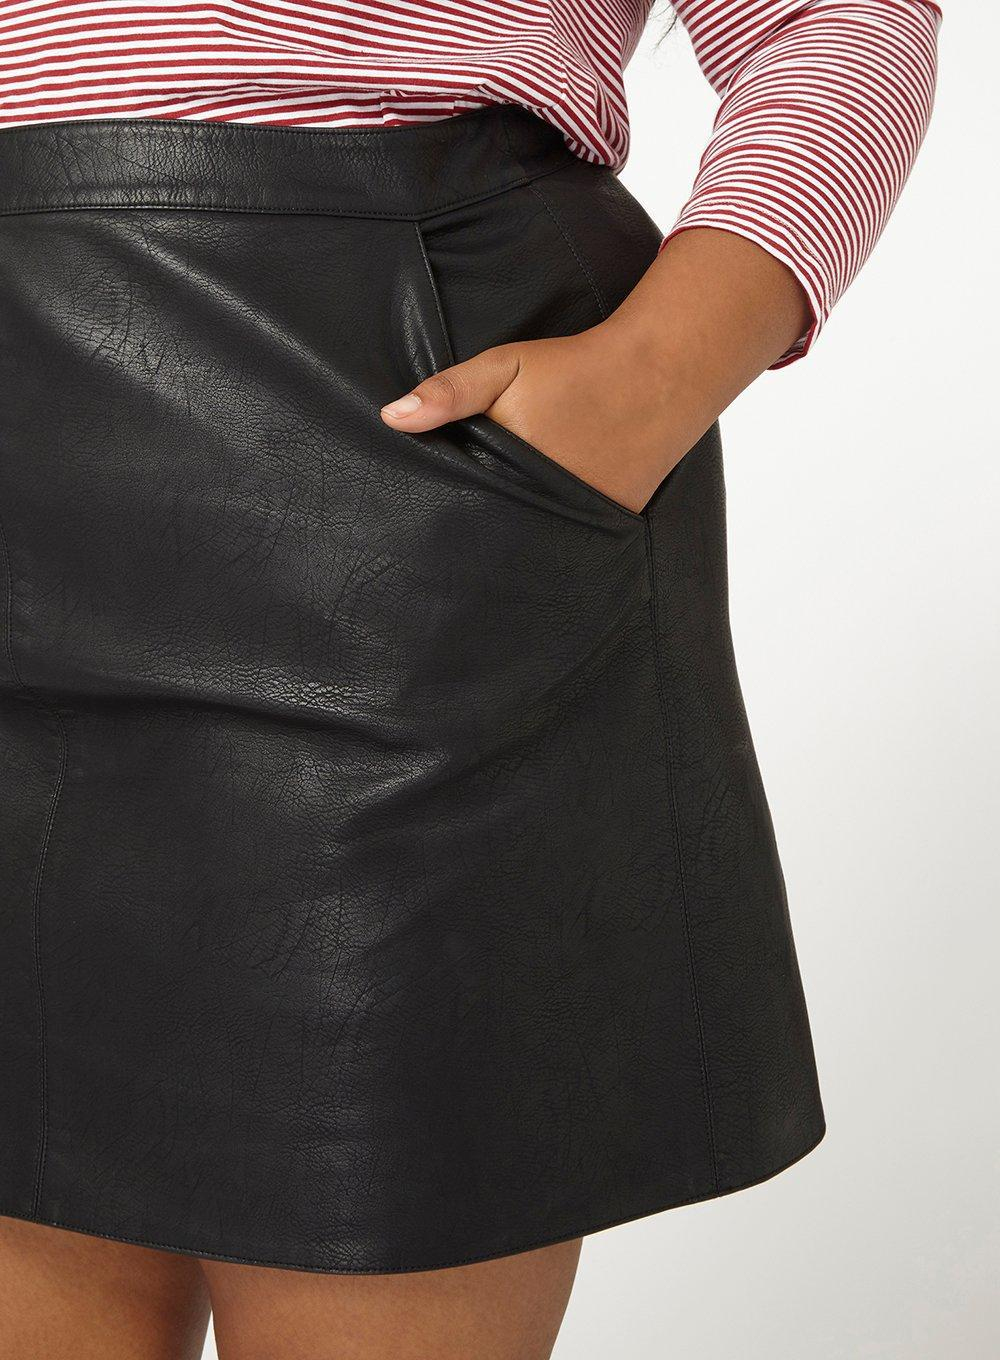 9ef518b43 Dorothy Perkins Dp Curve Black Faux-leather Mini Skirt in Black - Lyst